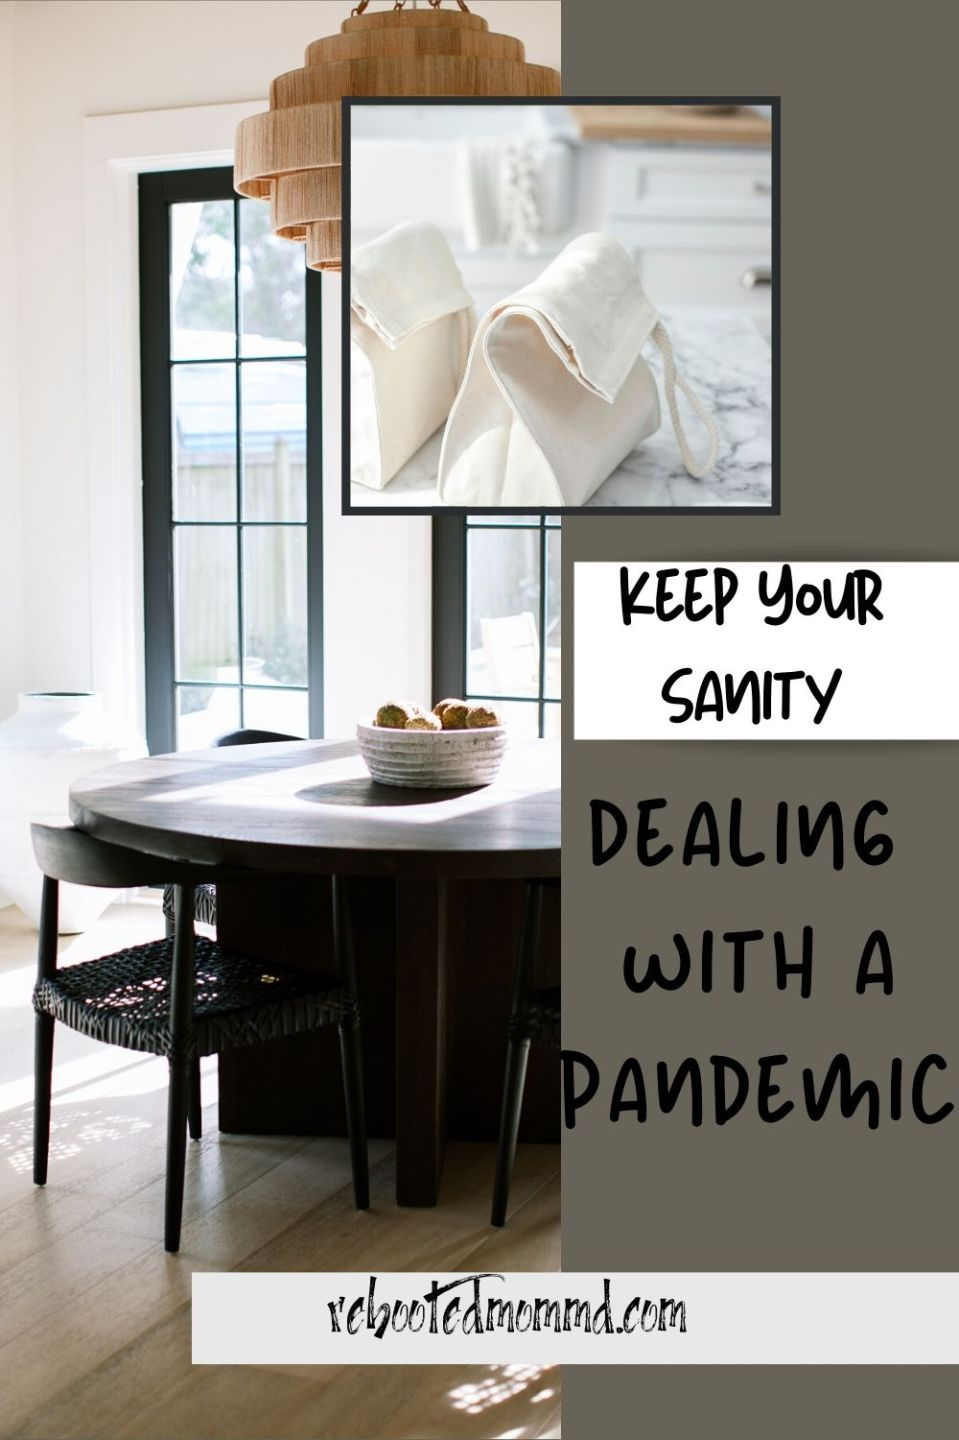 Dealing with a Pandemic: Keep Your Sanity